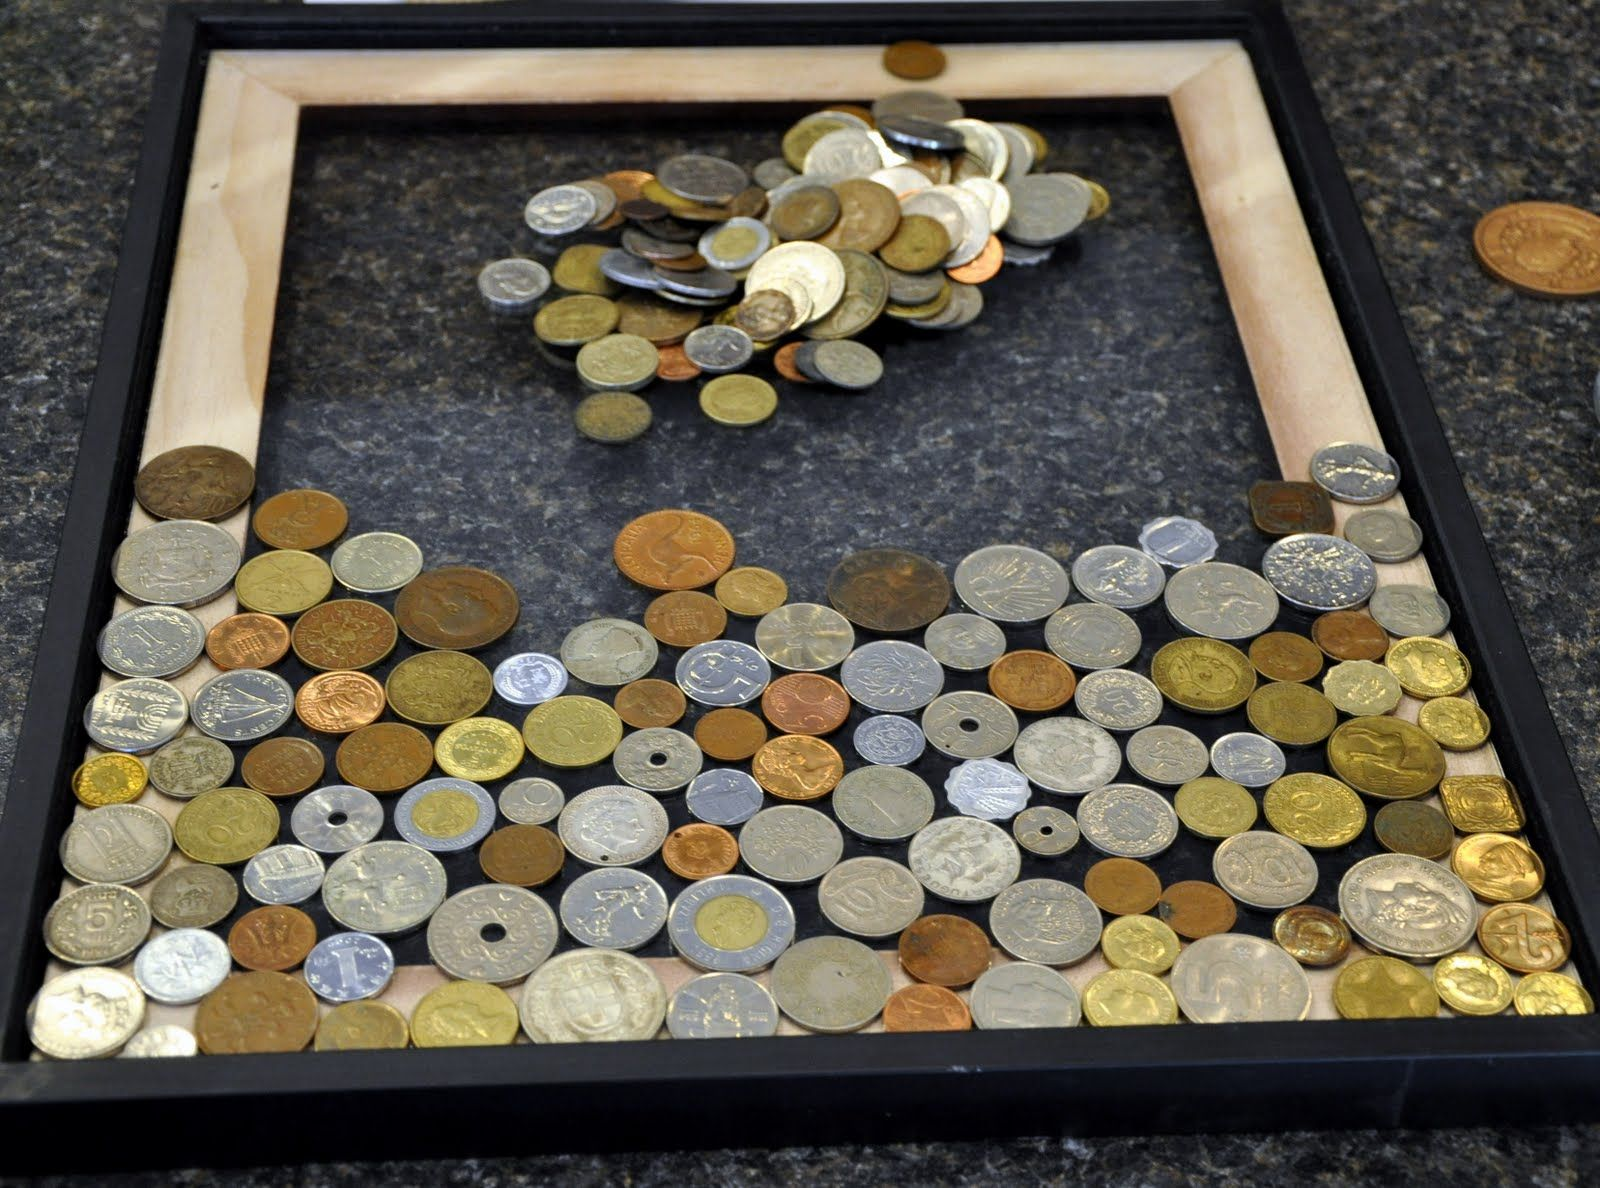 Coin Art - interesting! Lots of collectibles you could do this with